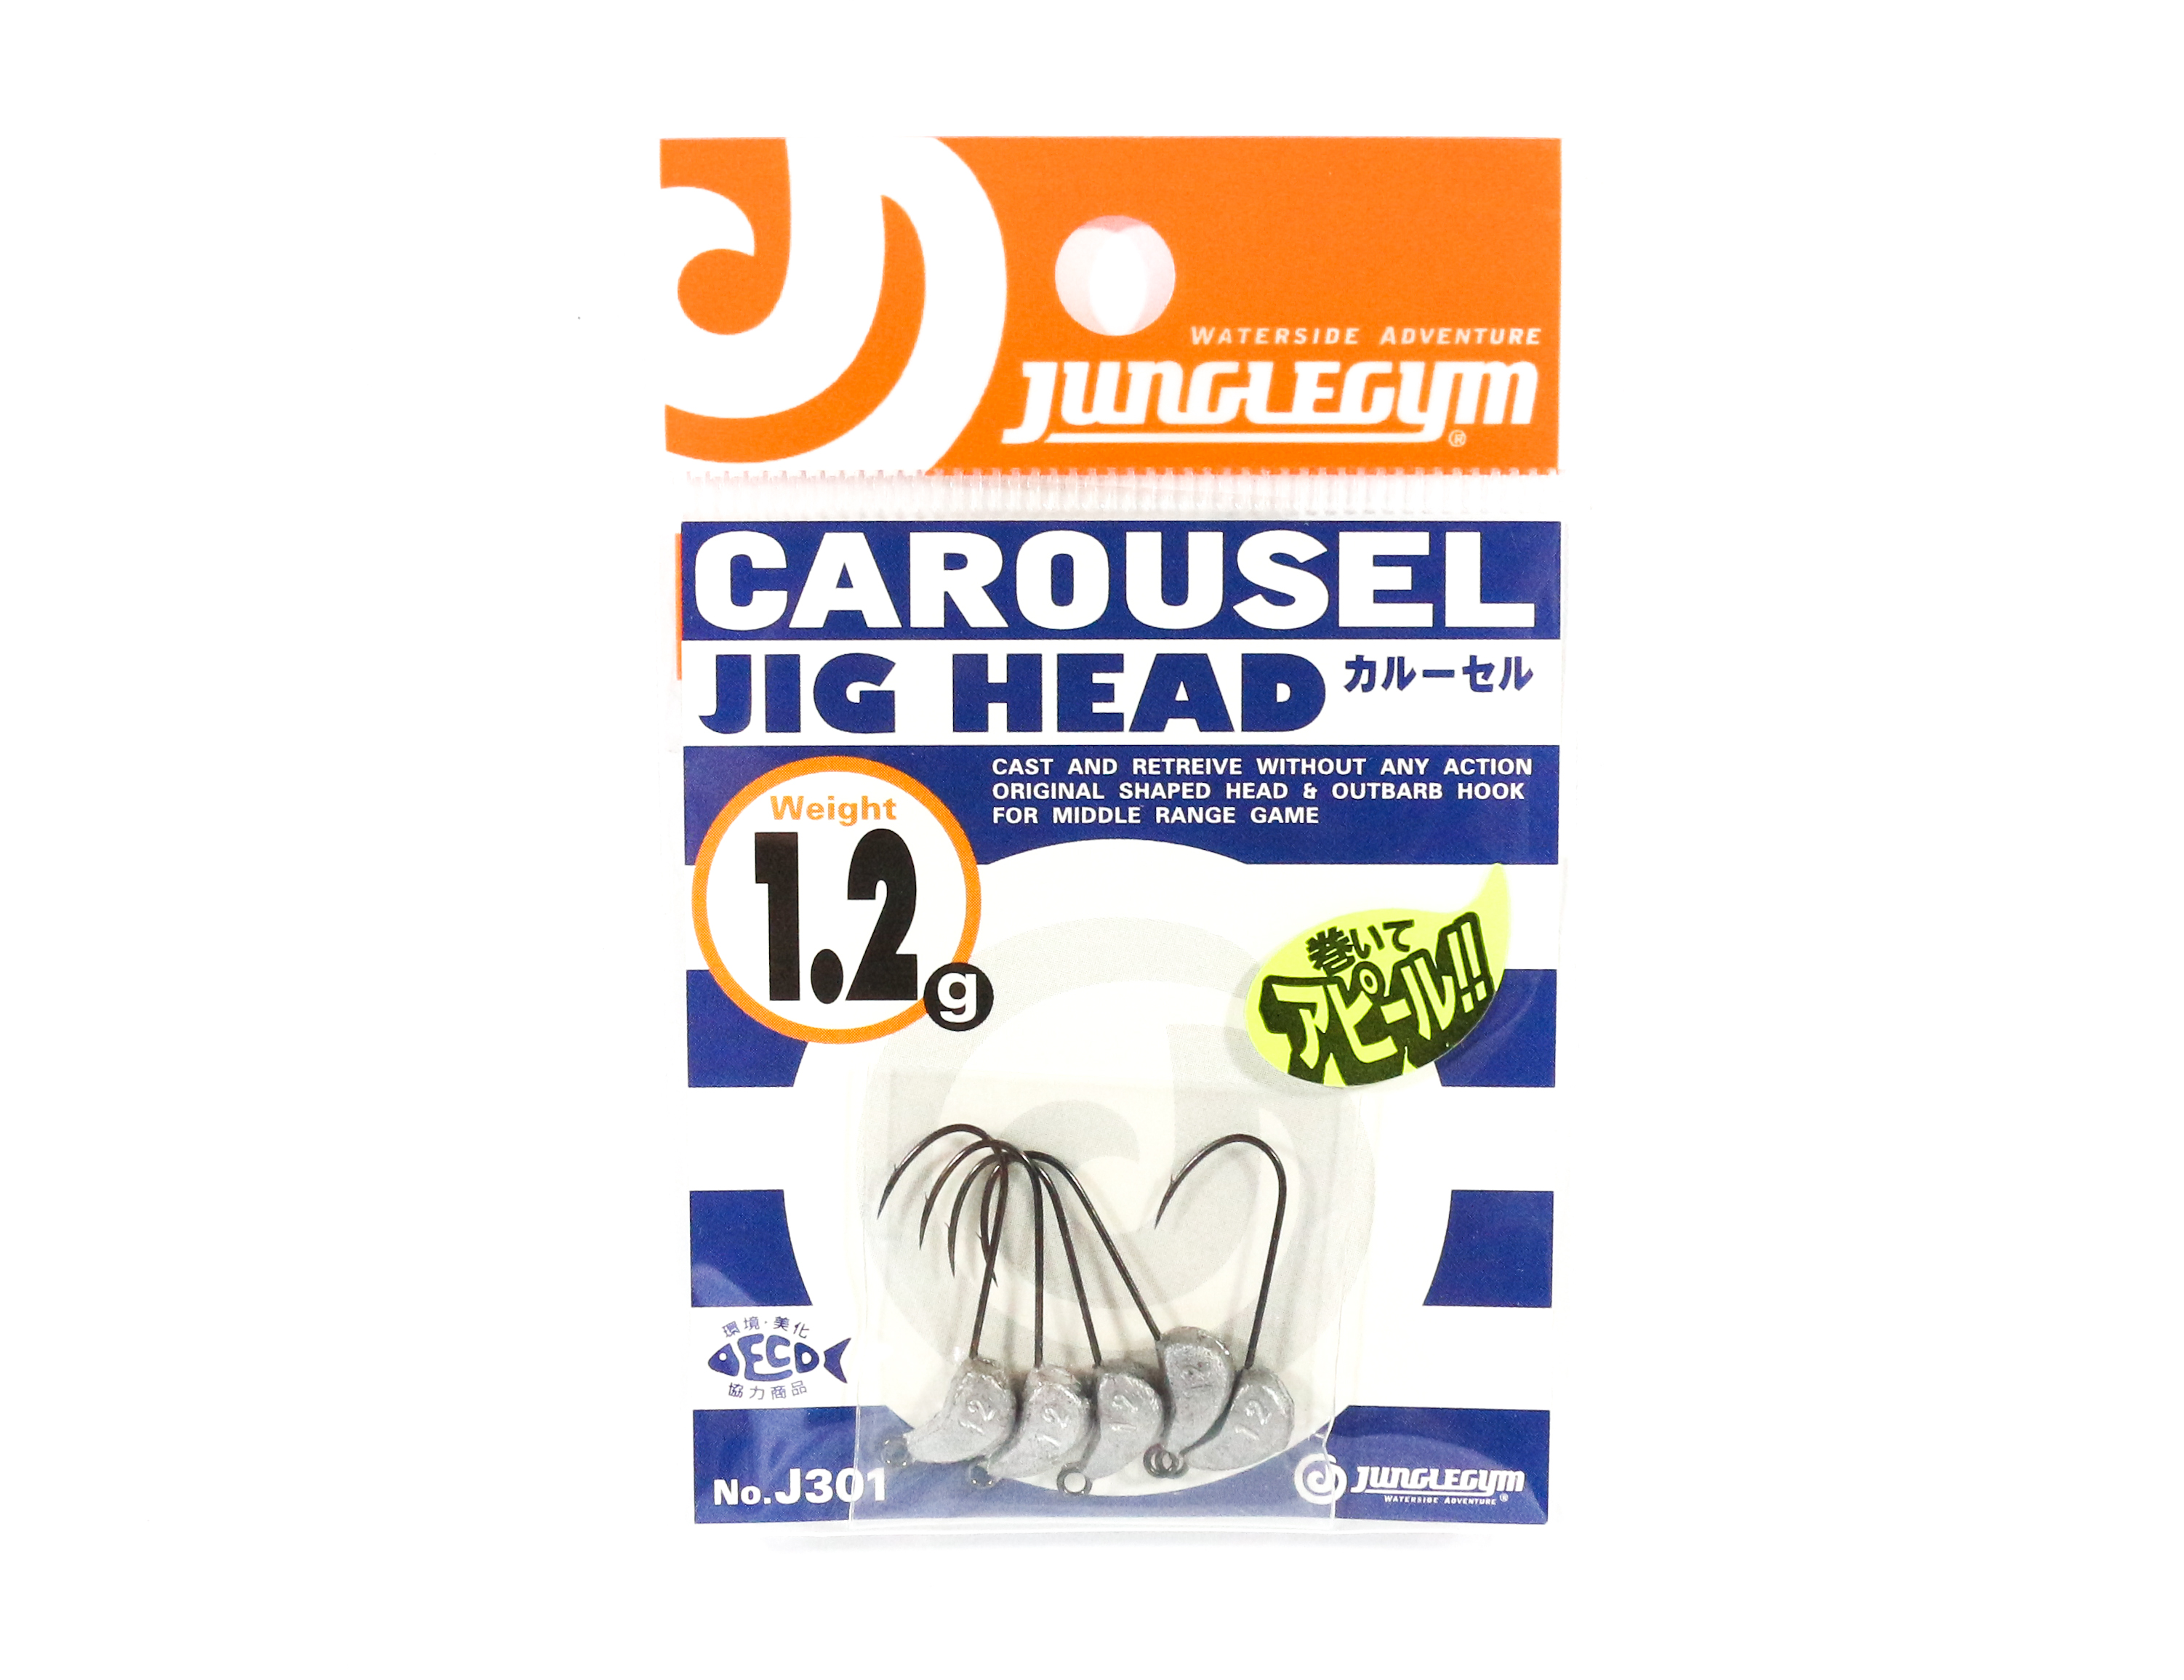 Jungle Gym J301 Jig Head Carousel 1.2 grams Hook Size 5 (7642)